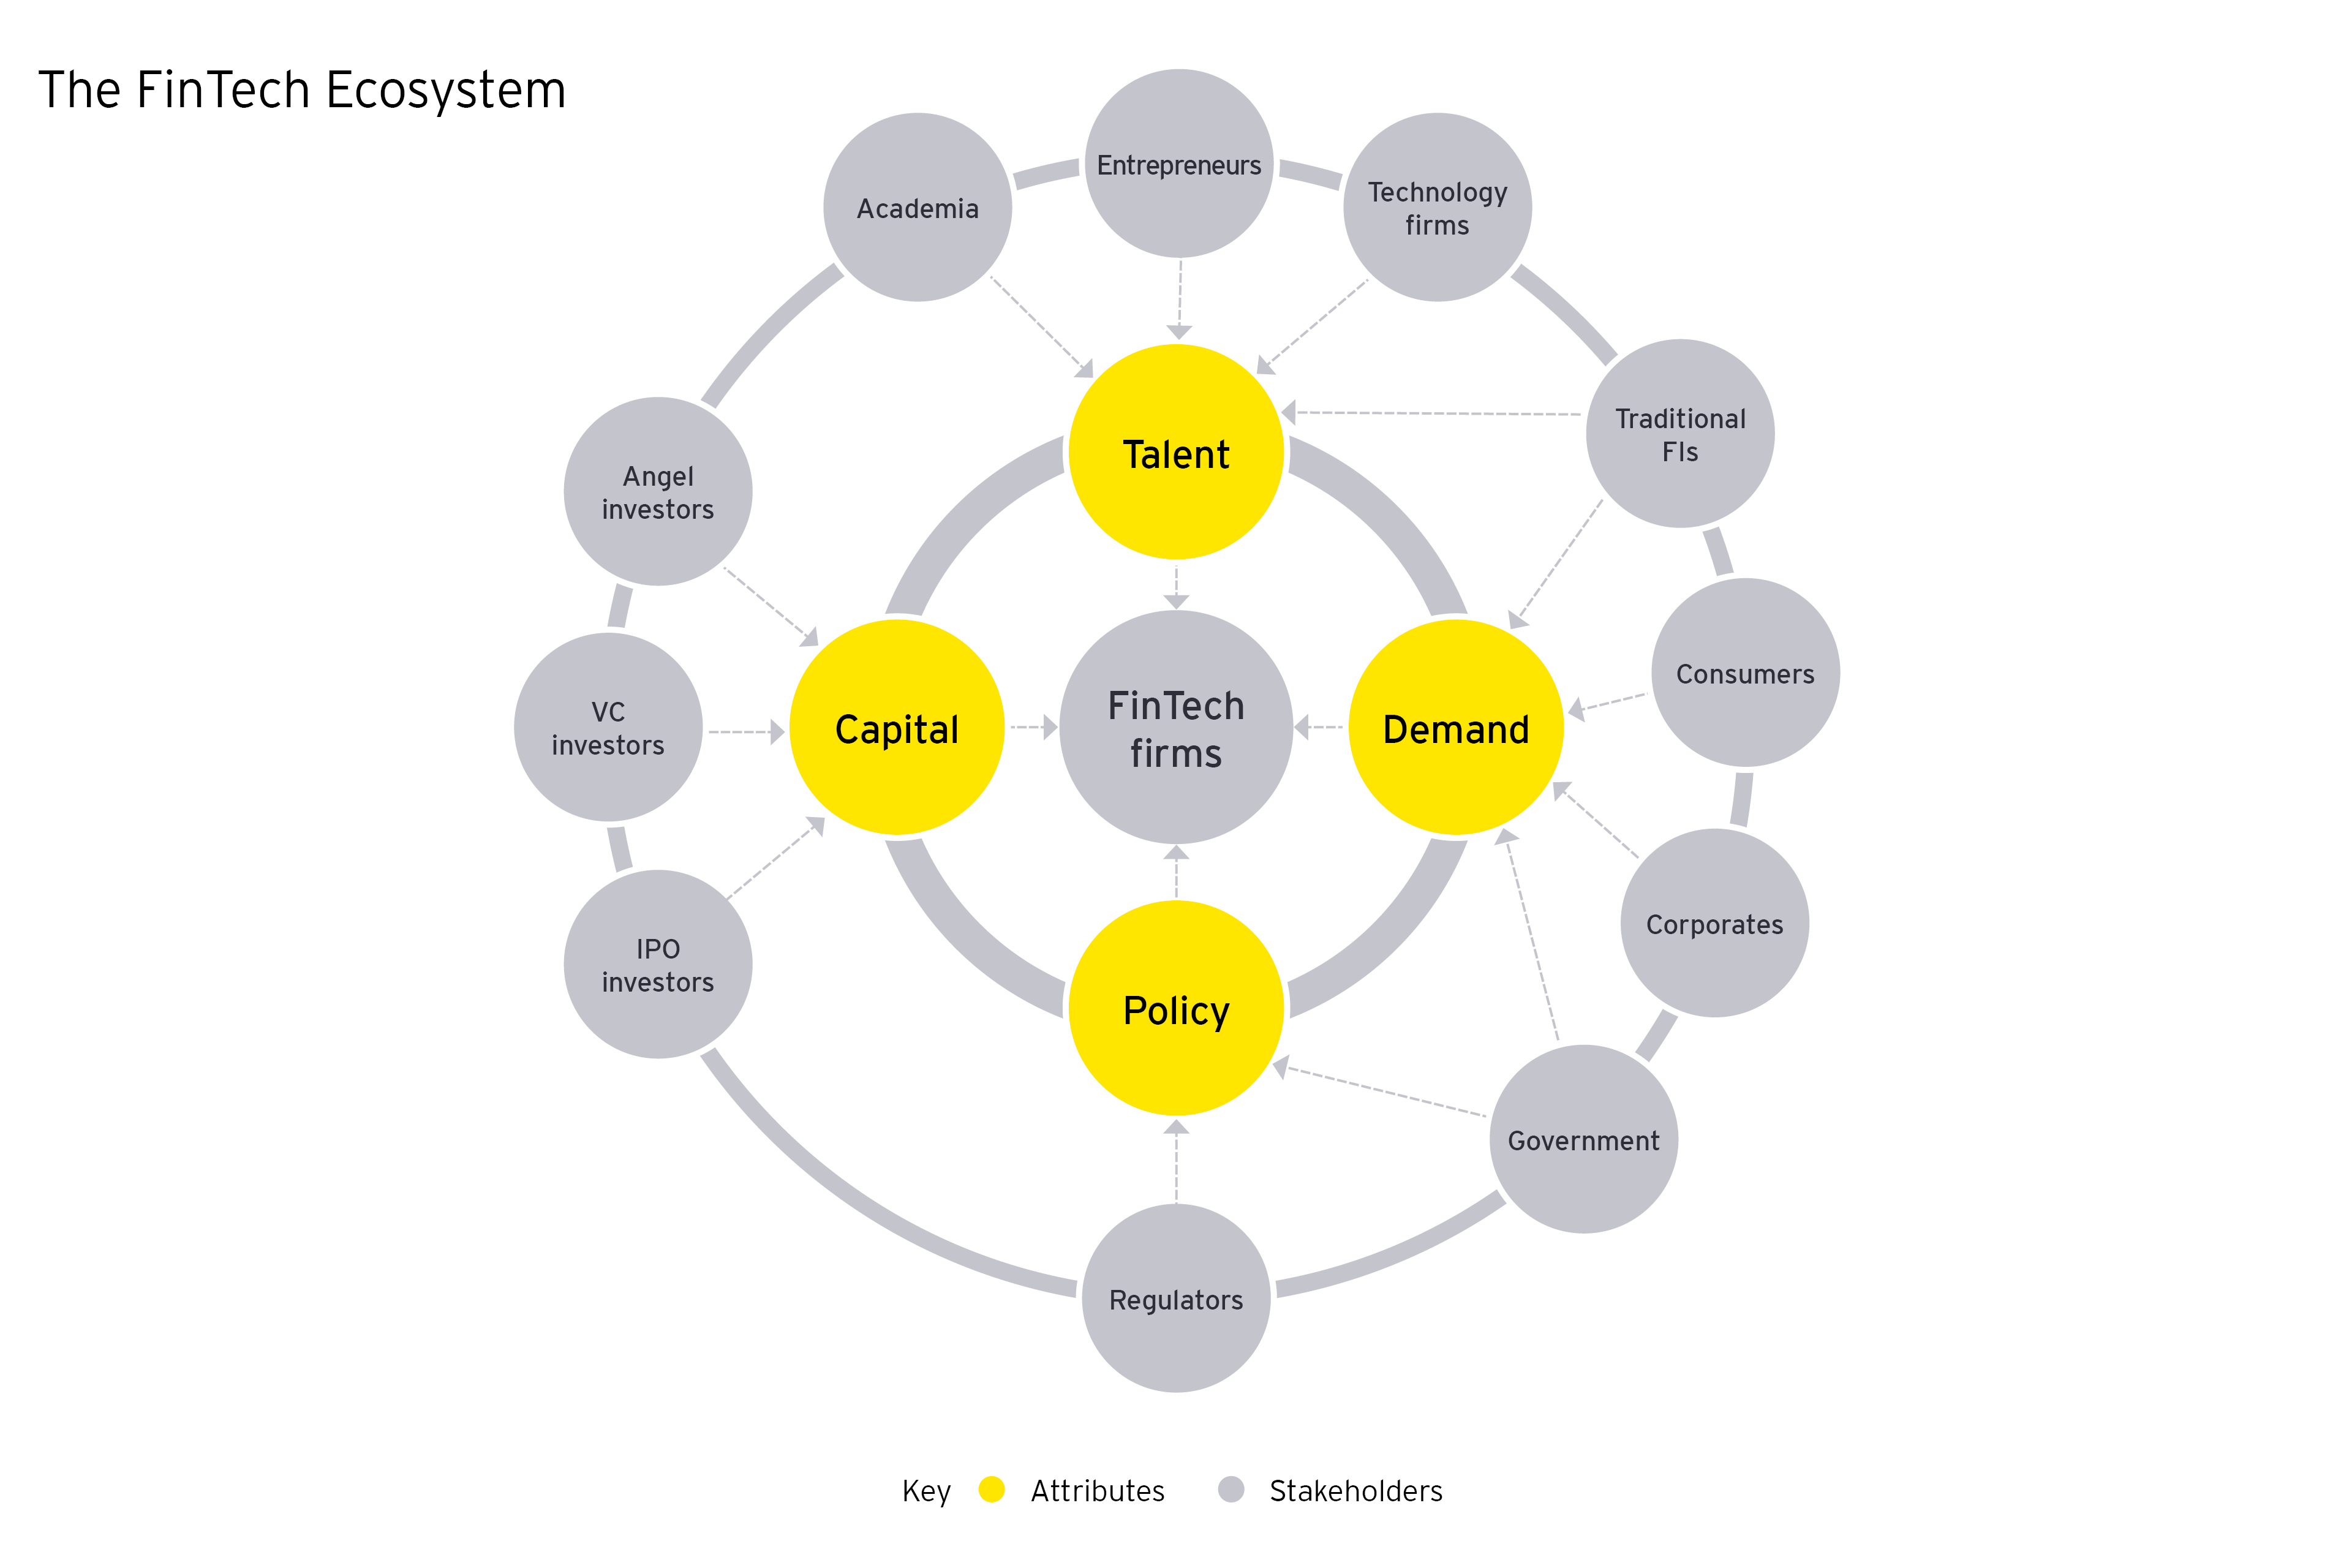 The diagram of the pillars of the FinTech ecosystem